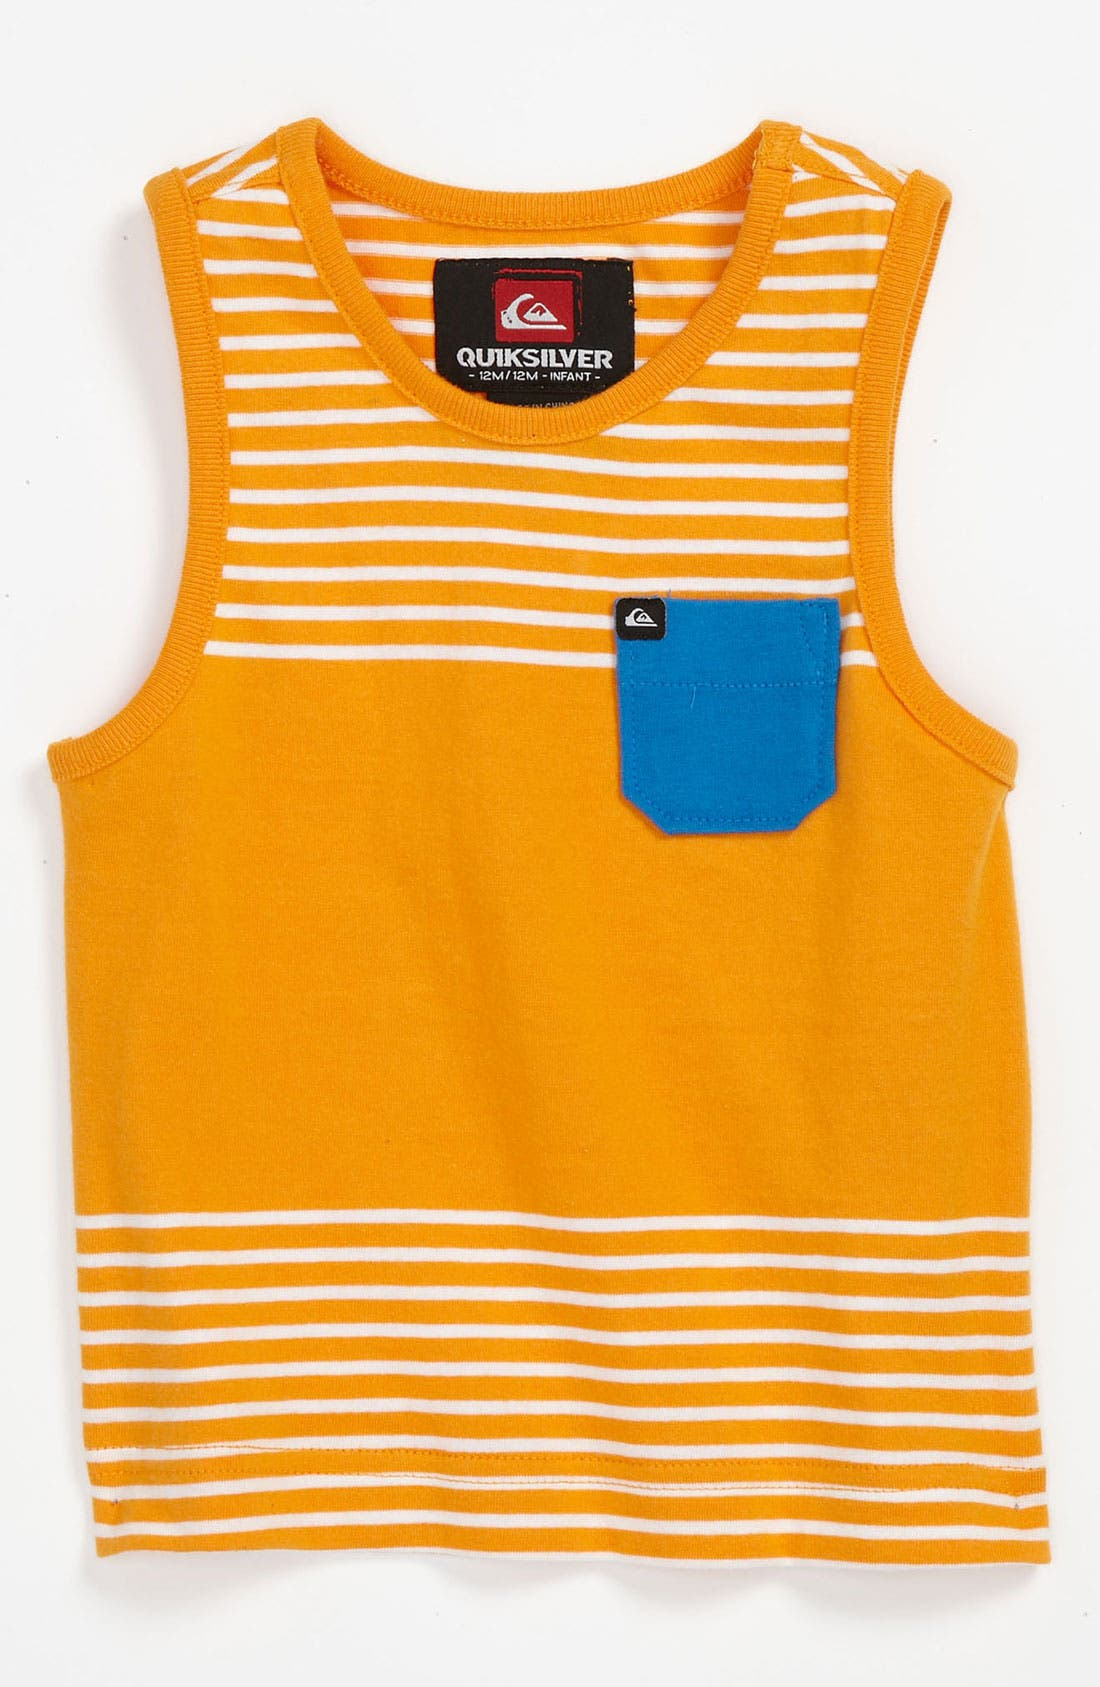 Main Image - Quiksilver 'Tropics' Tank Top (Toddler)